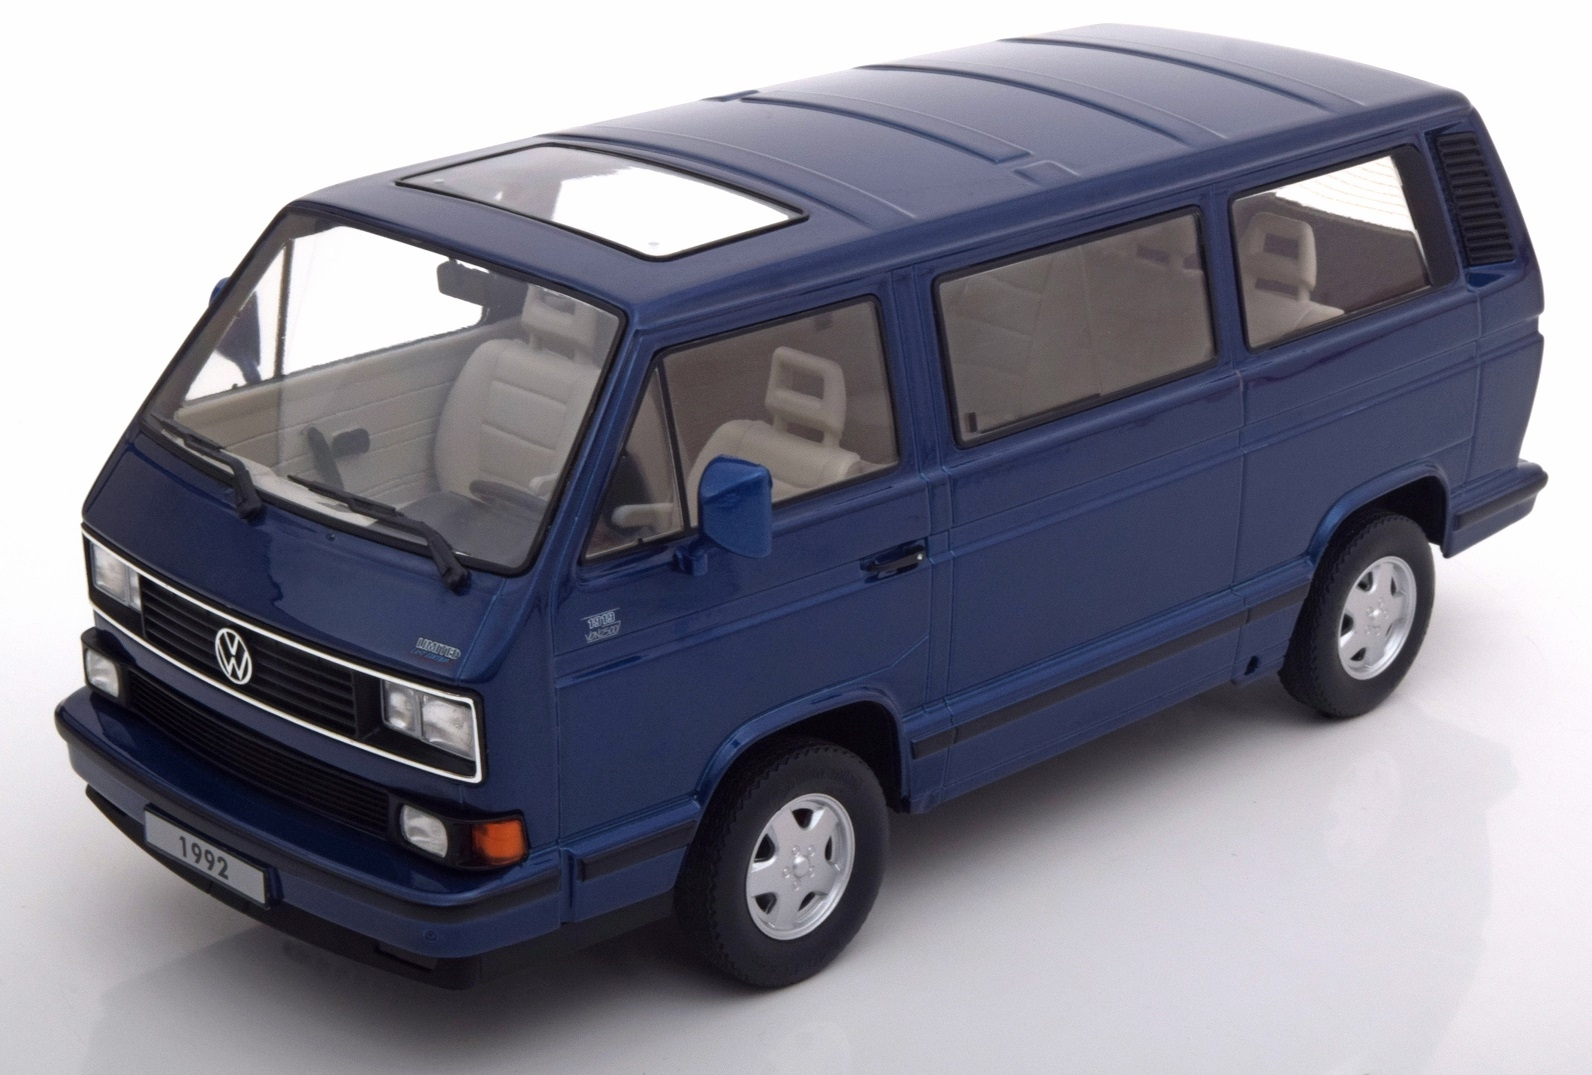 Volkswagen T3 Bus 1992 Blue Limited last edition 1:18 KK scale